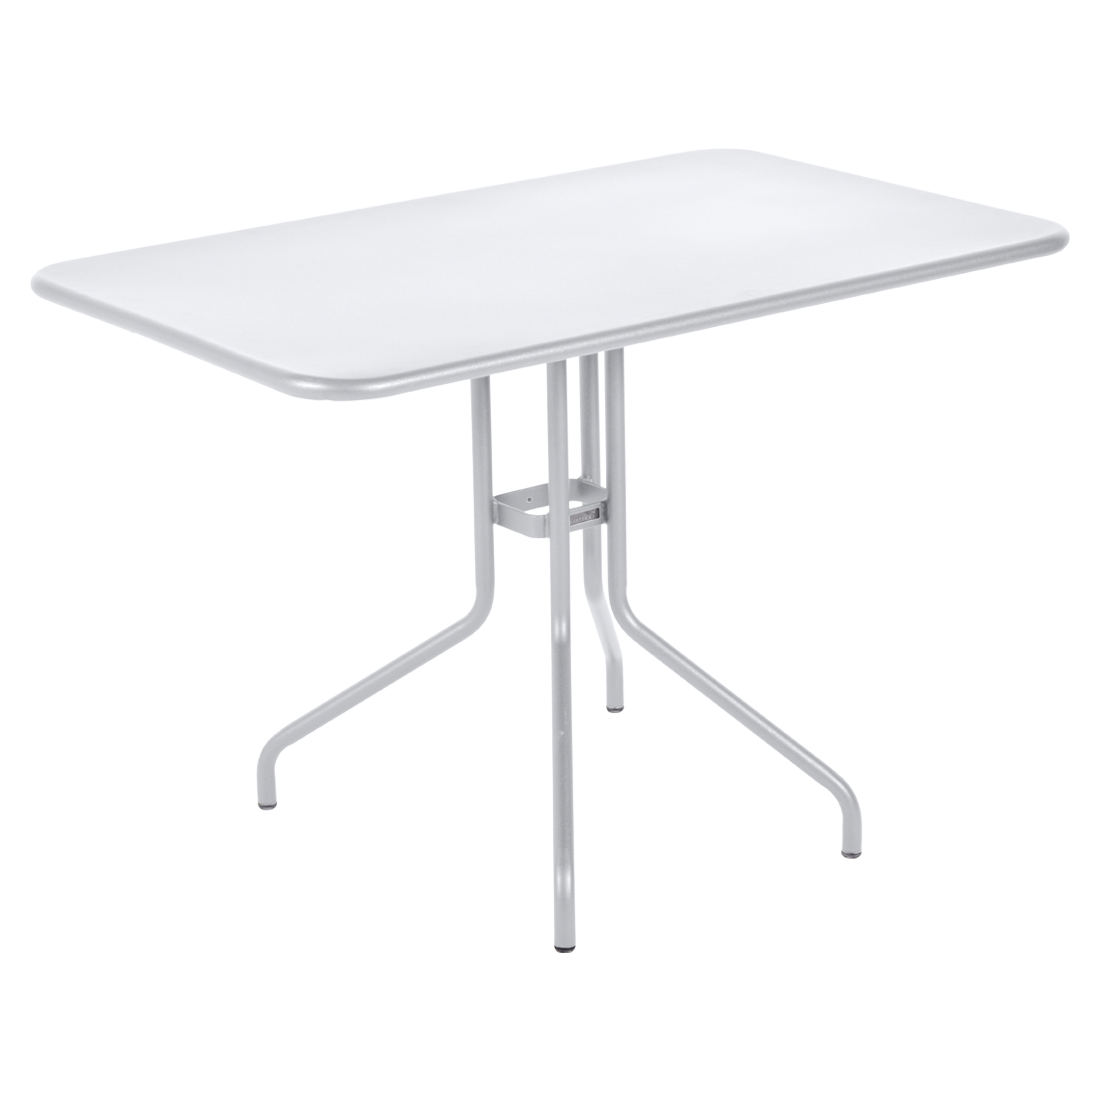 table restaurant, table terrasse, table metal, table pliante metal, mobilier restaurant, table pliante blanche